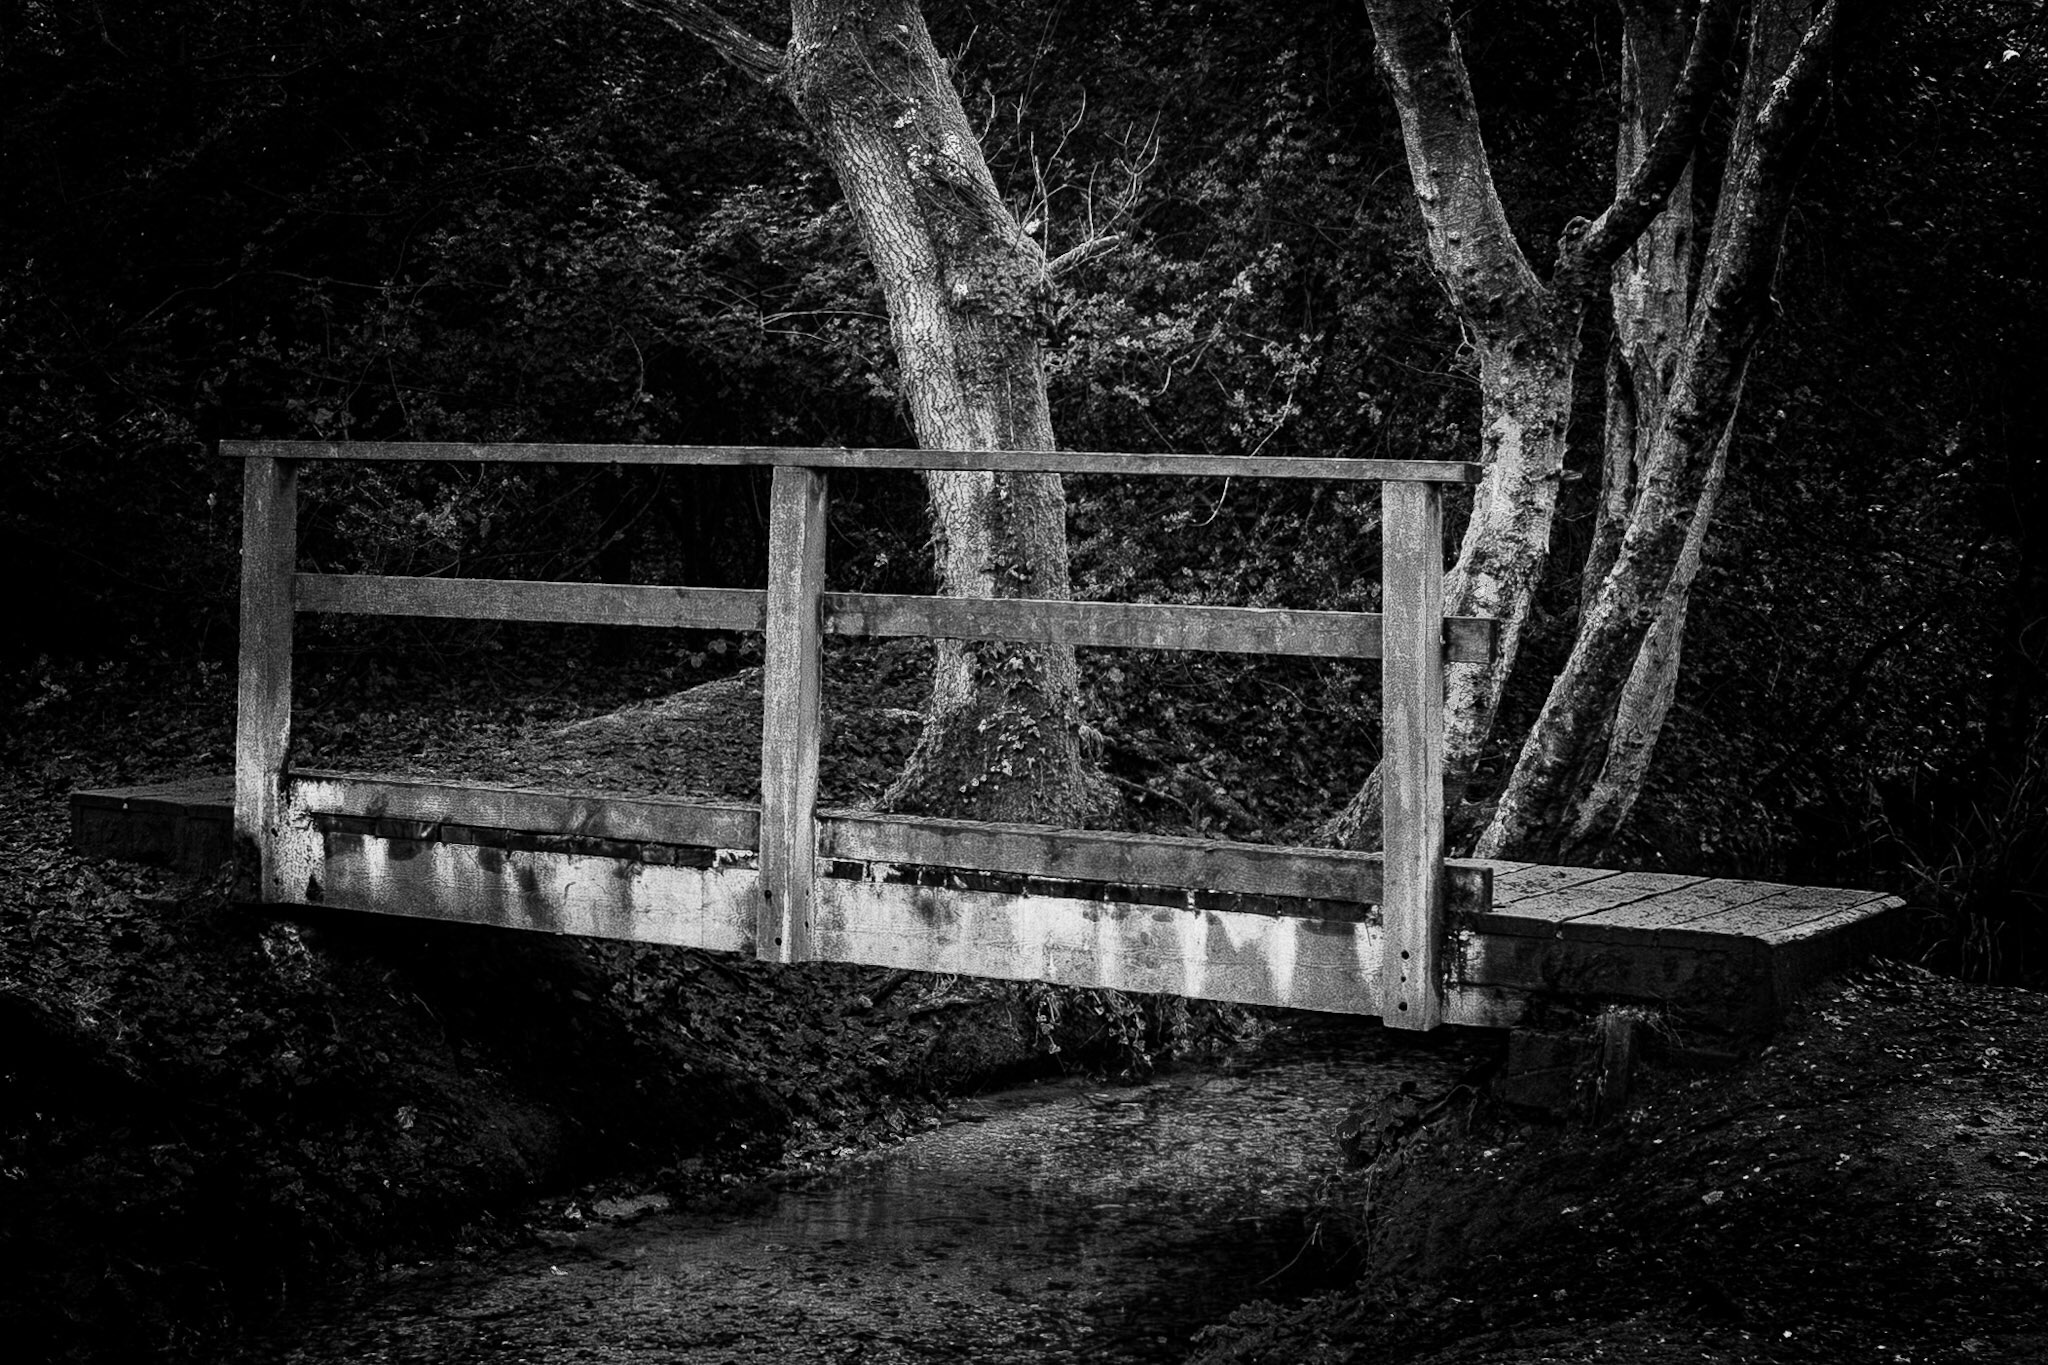 The picture of the footbridge up close in black and white